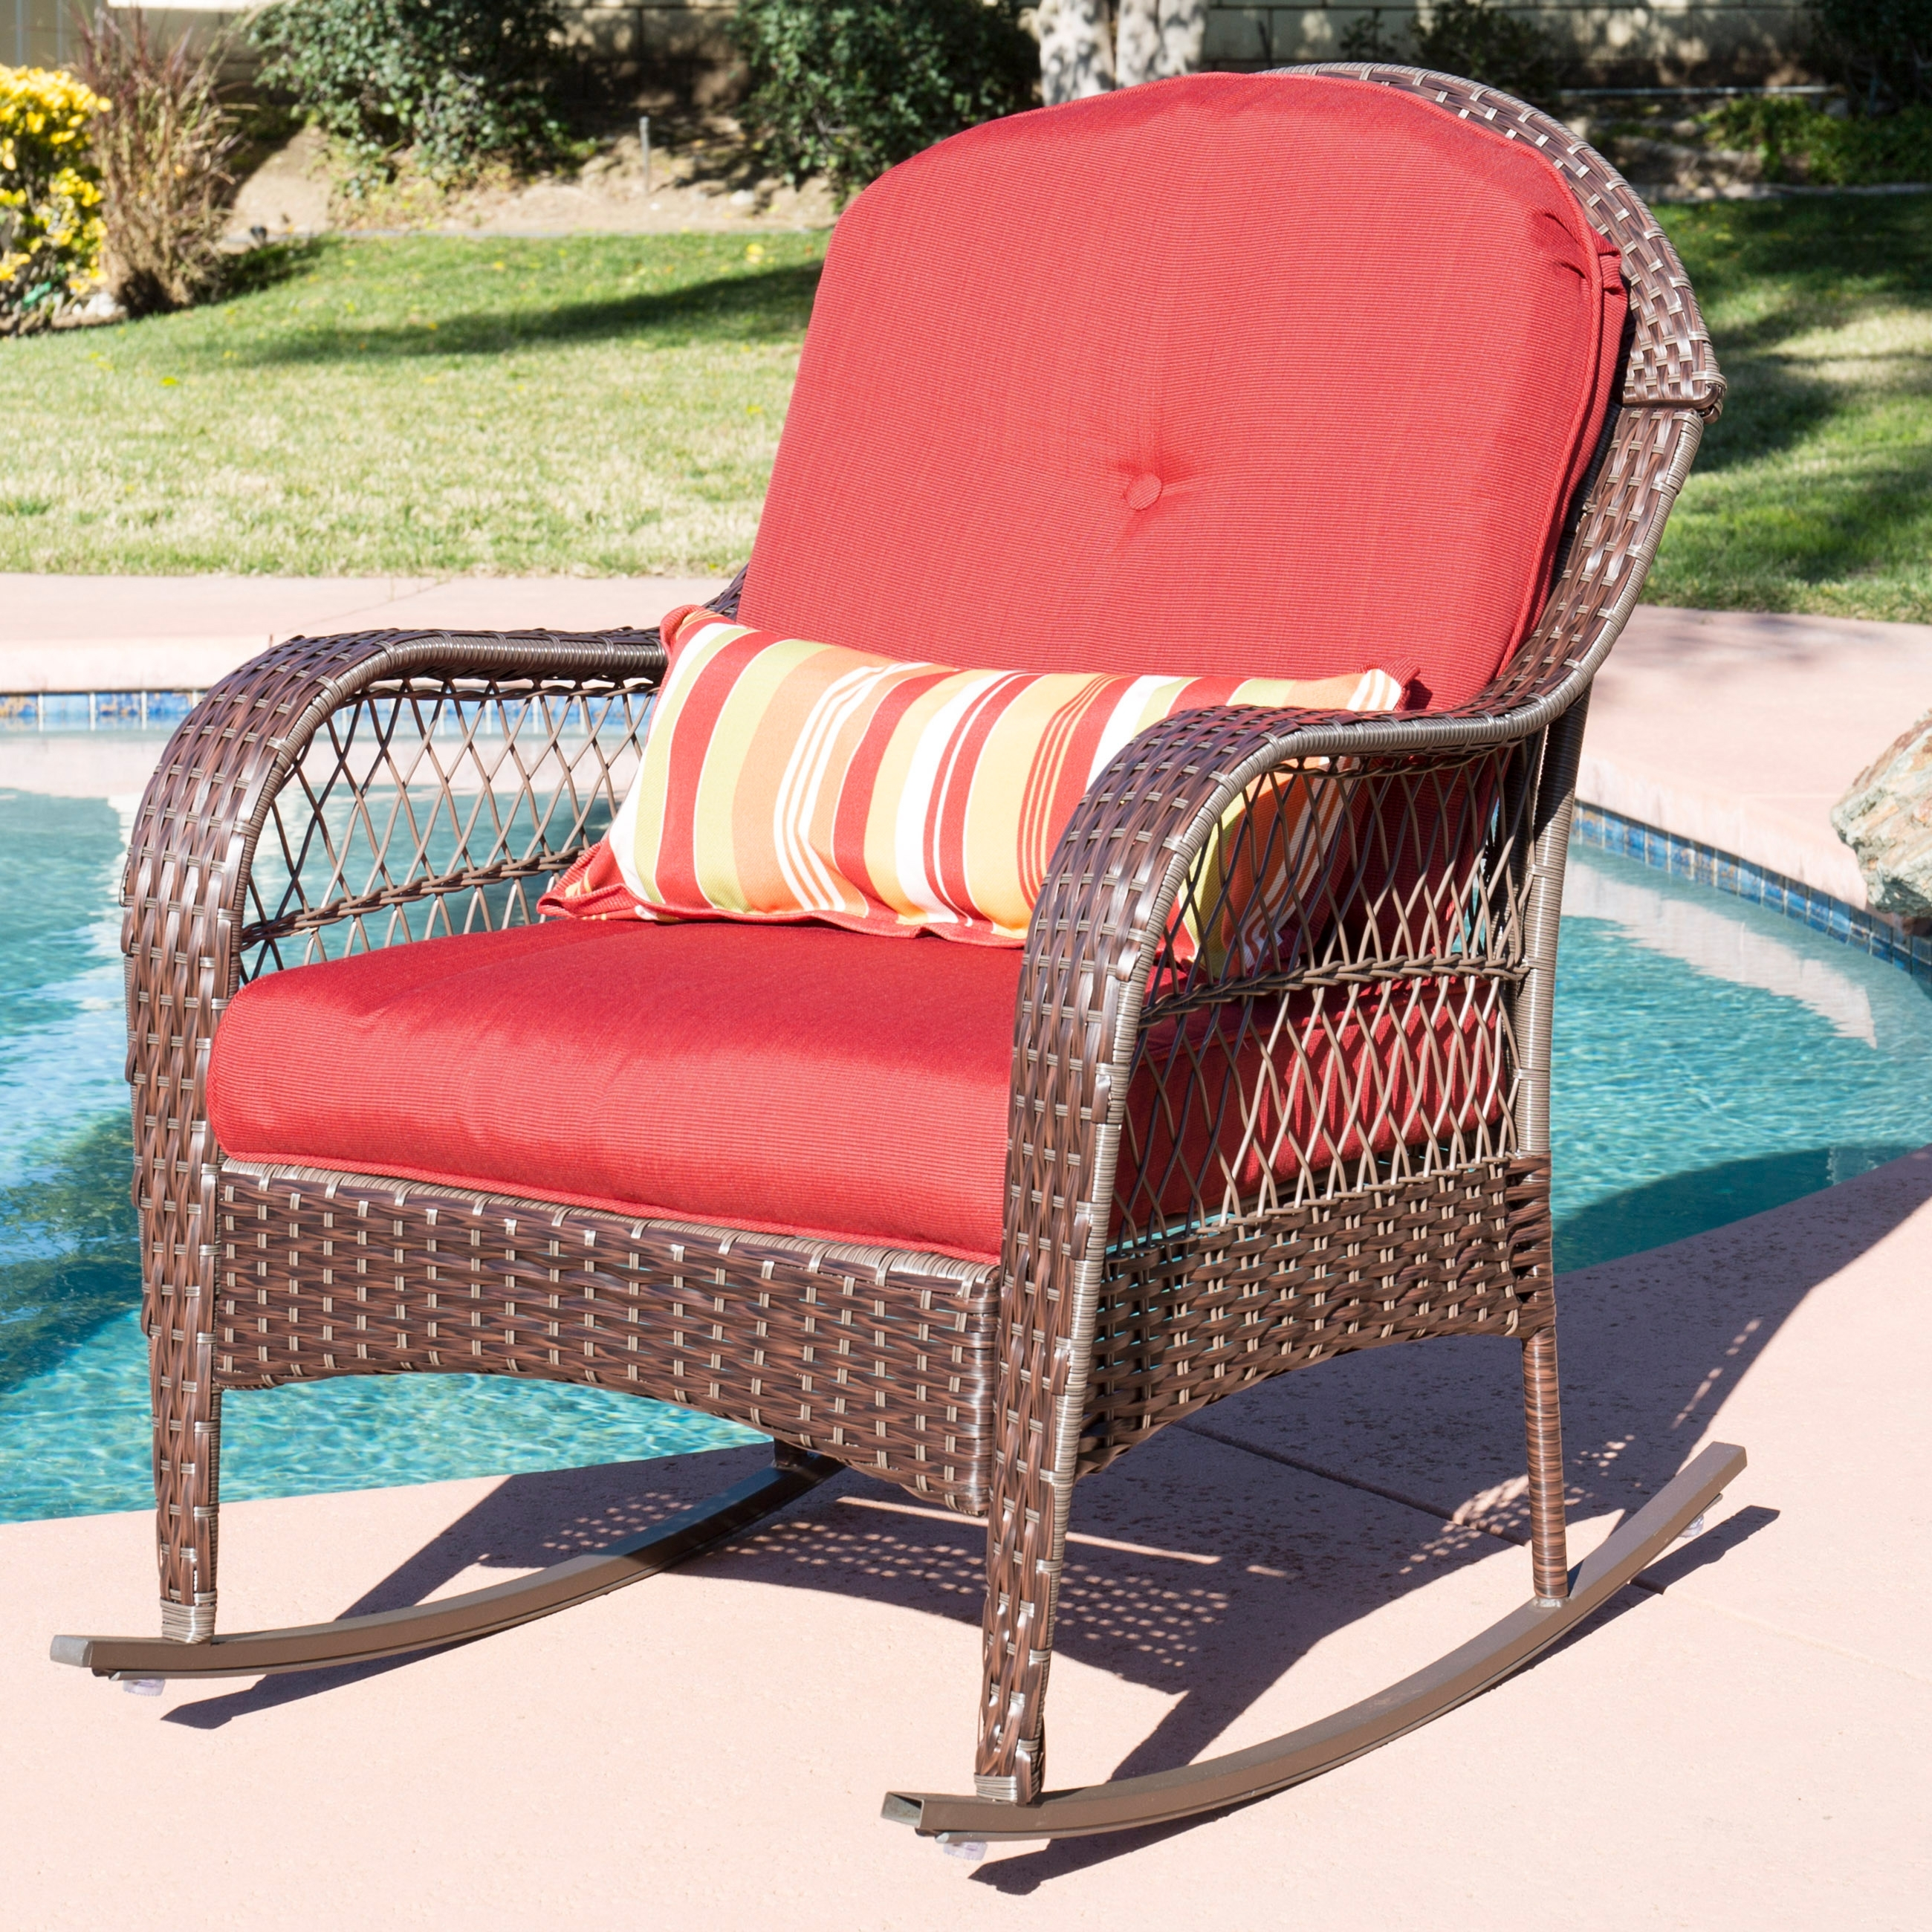 Best Choice Products Wicker Rocking Chair Patio Porch Deck Furniture Within Outdoor Wicker Rocking Chairs (View 1 of 15)